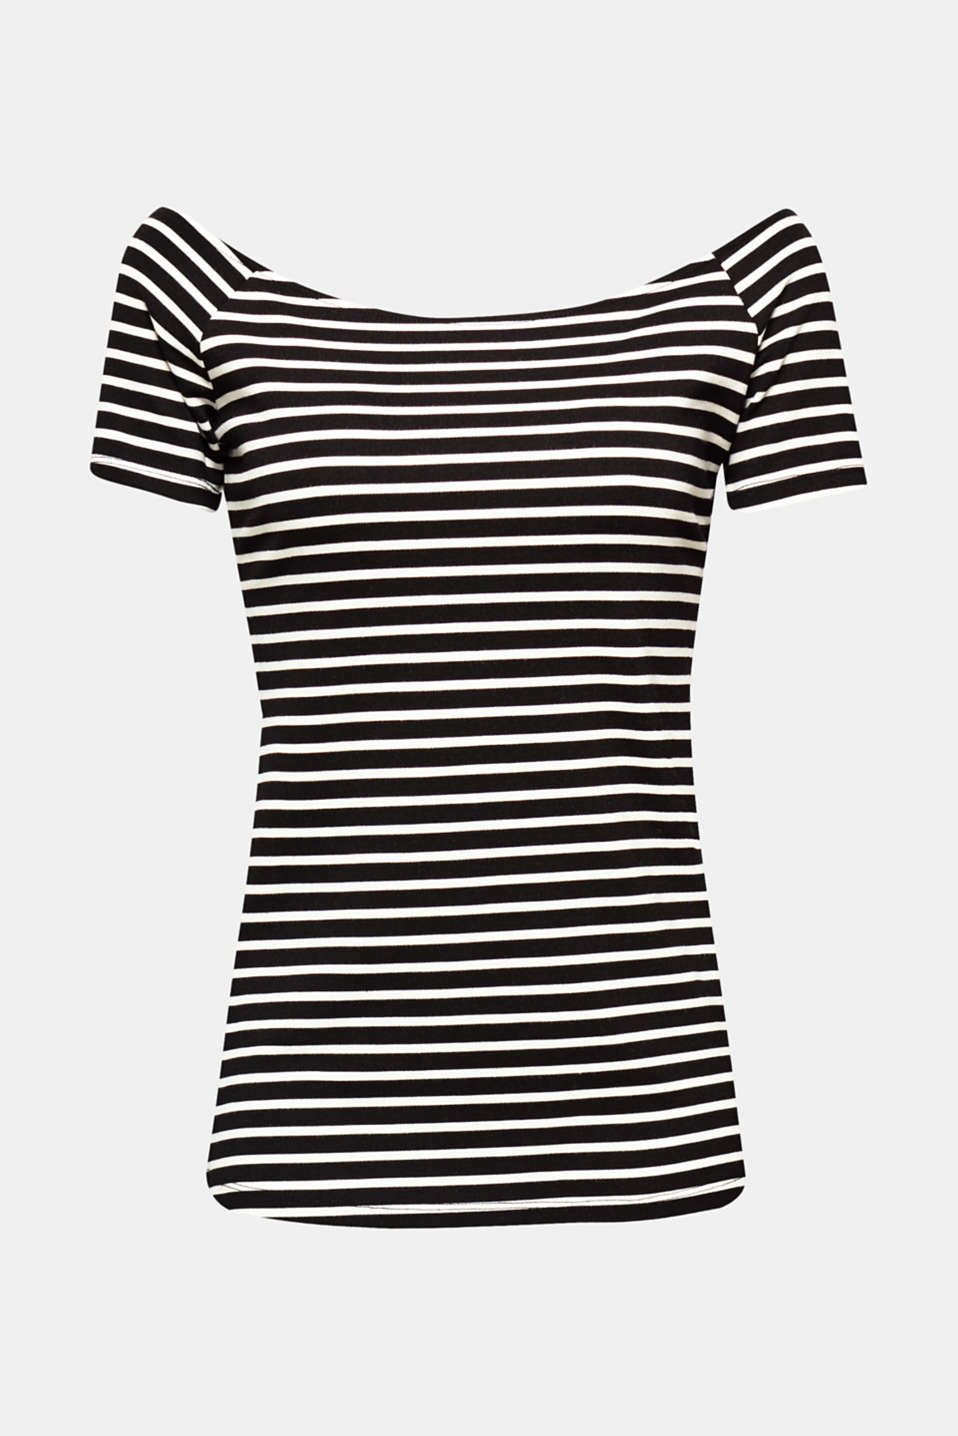 Sophisticated nautical look: The summery off-shoulder design and cut-out at the back give this striped stretch T-shirt a feminine touch!